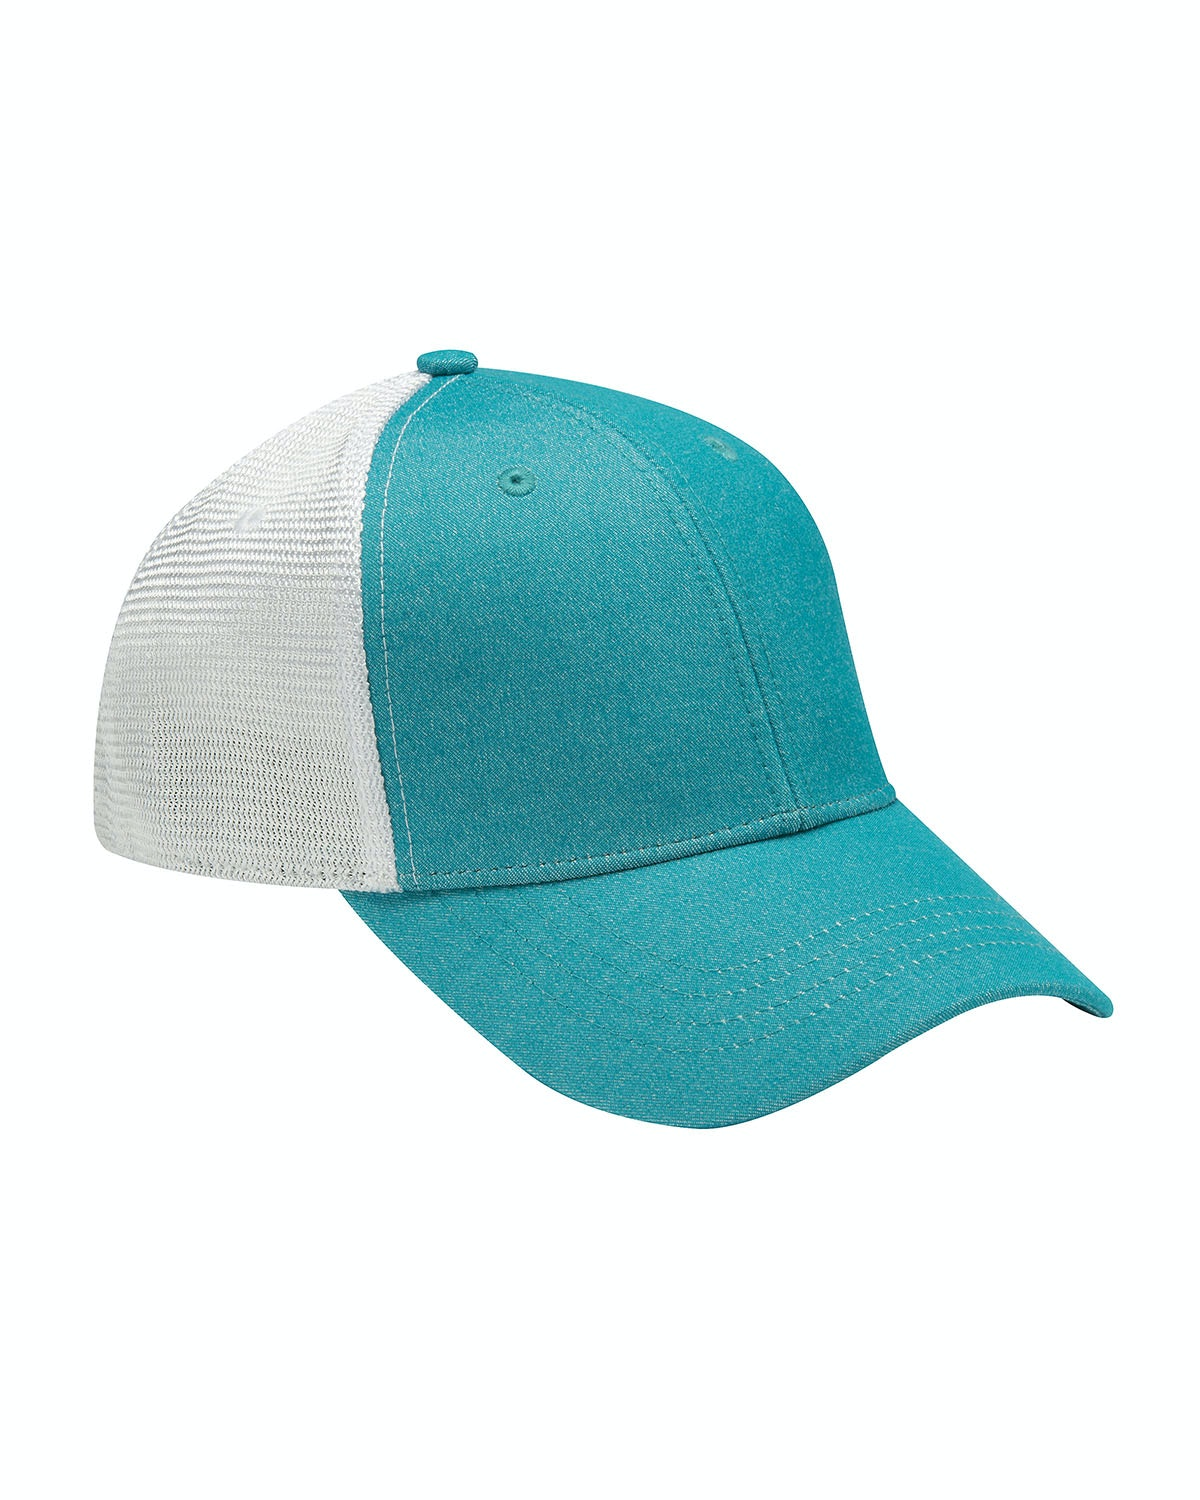 KN102 - Teal/ White